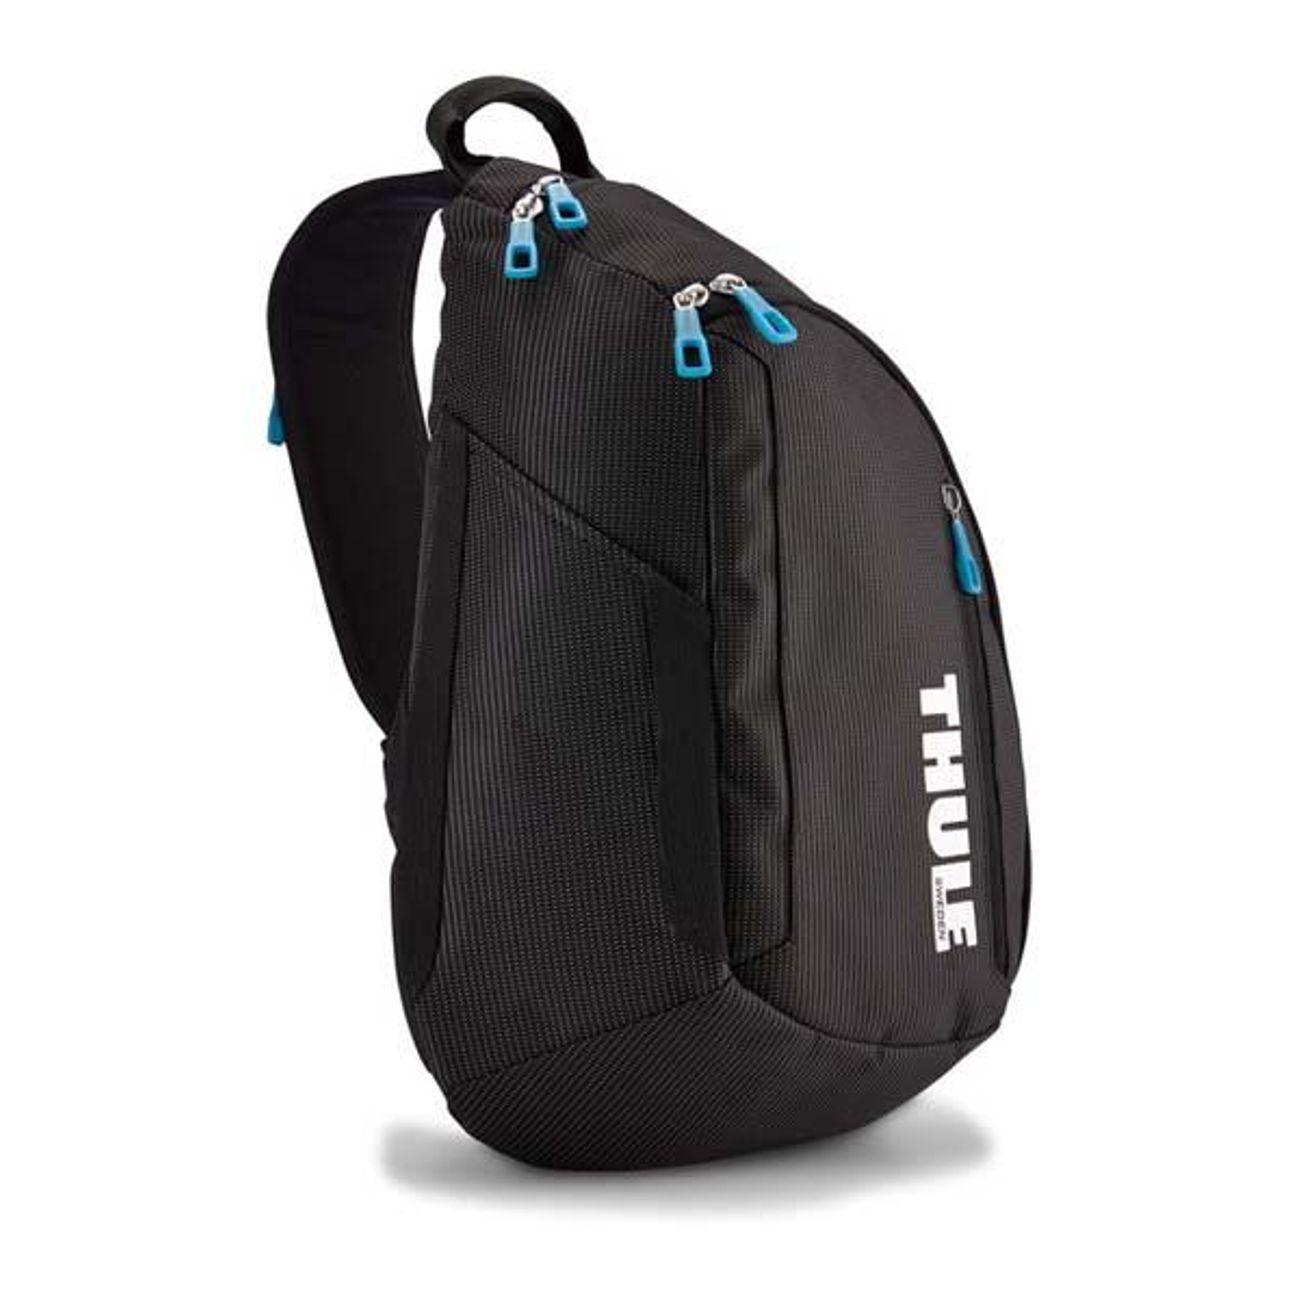 Pack Thule 13inch 0 Sling Macbook 2 Crossover Bagagerie 17l 7vIgYfb6ym